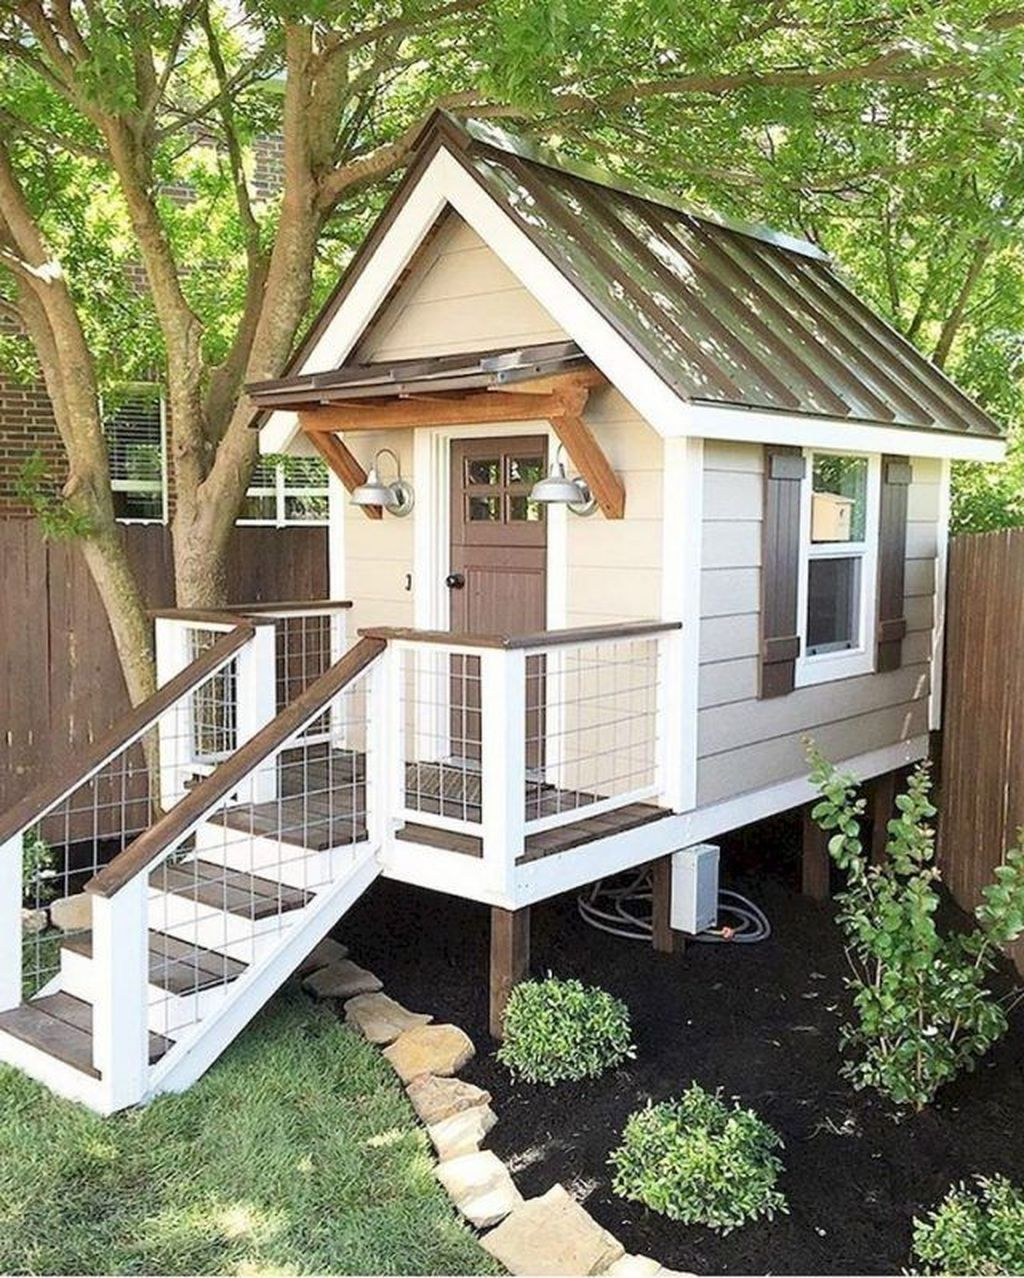 Incredible Magical Backyard Design Ideas For Your Kids 11